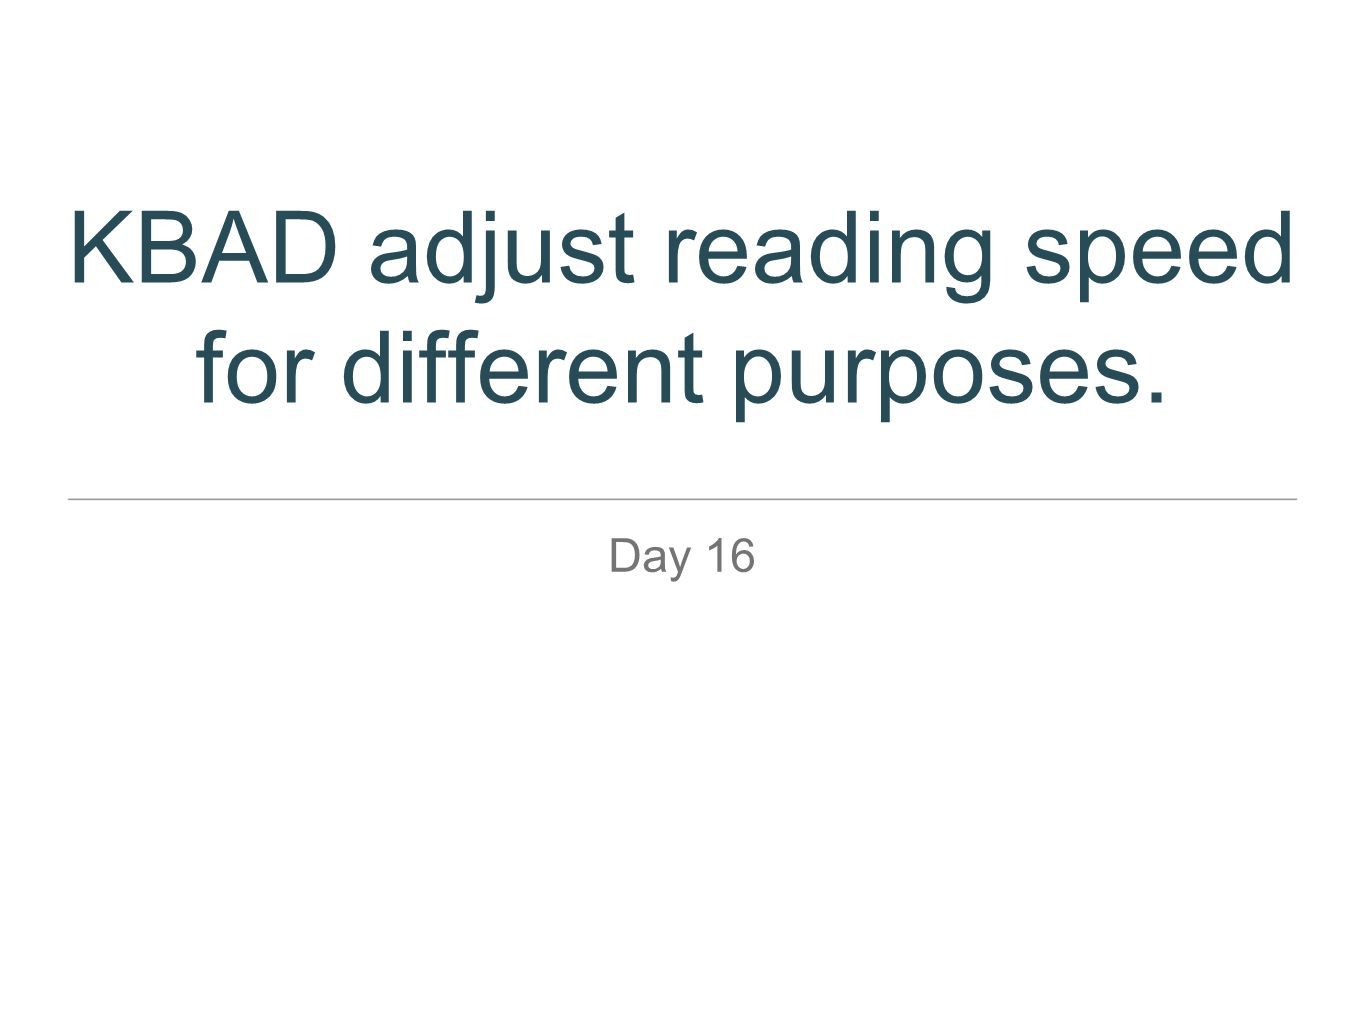 KBAD adjust reading speed for different purposes.